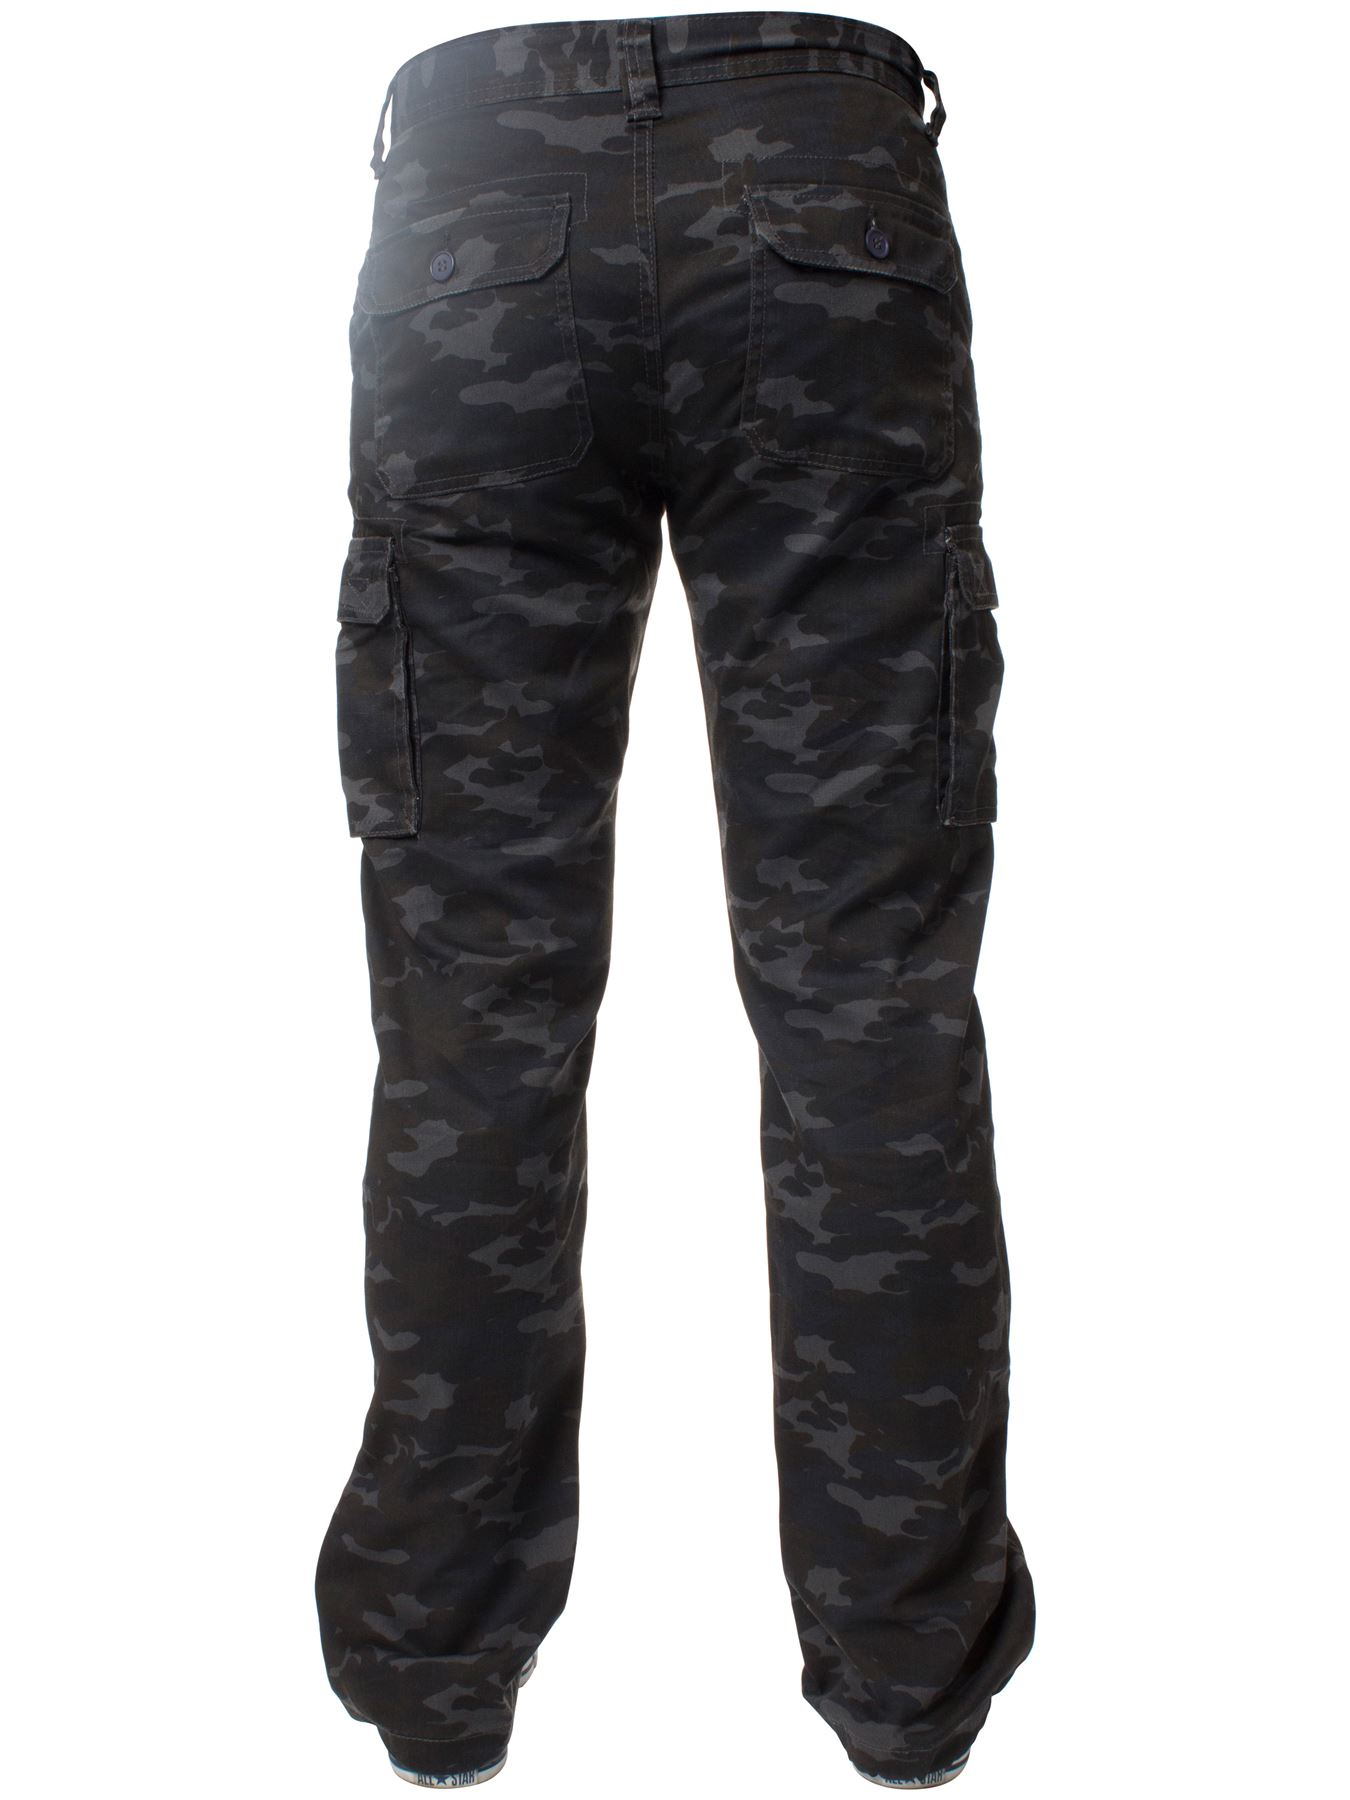 Kruze-Mens-Military-Combat-Trousers-Camouflage-Cargo-Camo-Army-Casual-Work-Pants miniatura 35